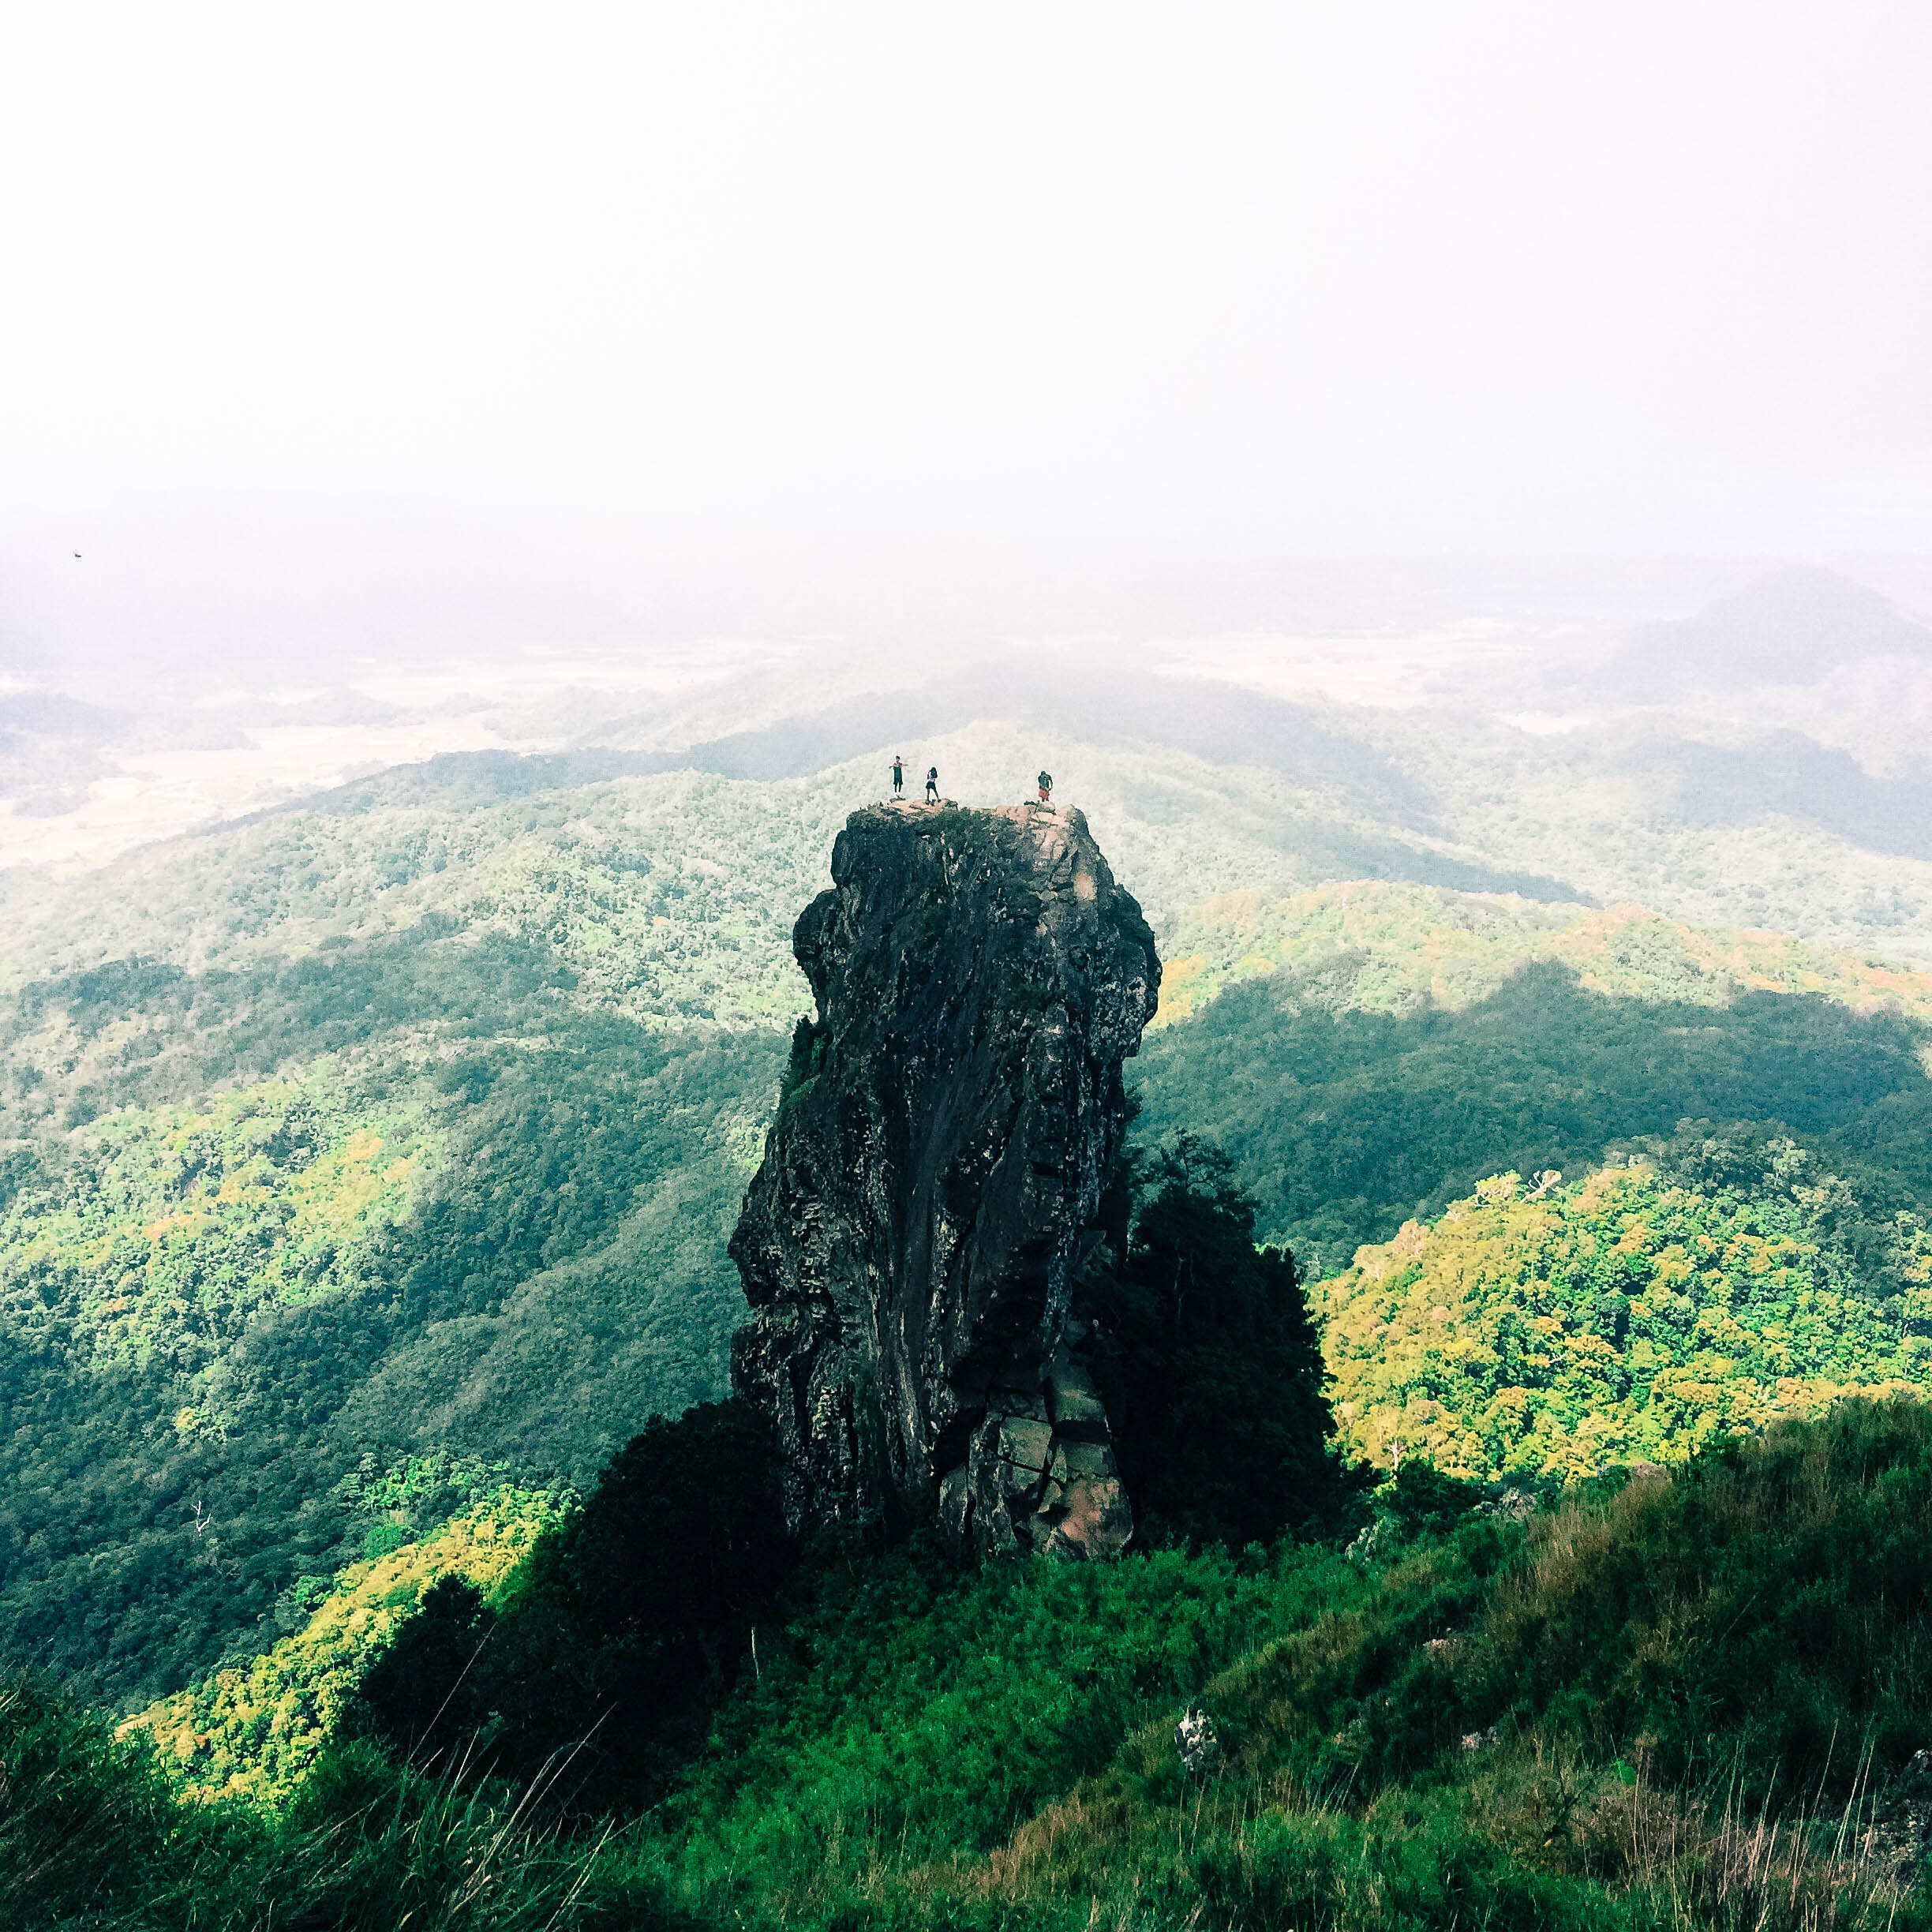 View of Pico de Loro in Mount Palay-Palay, Philippines